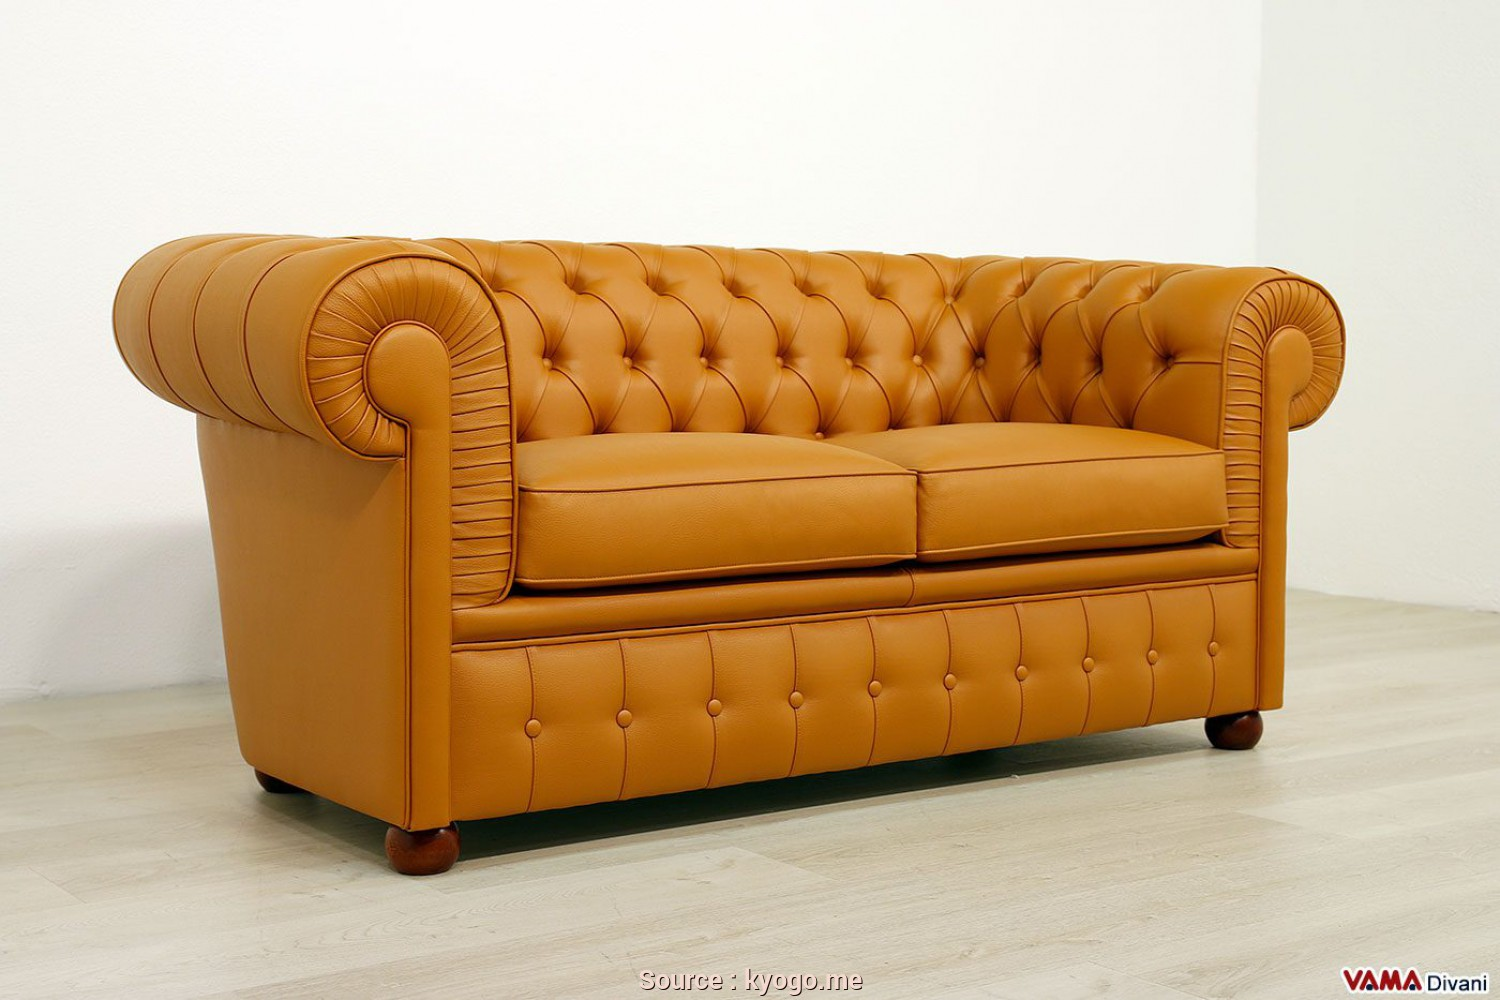 Come Fare Un Divano Chesterfield, Loveable Full Size Of Rivestimenti E Tessuti, Chesterfield Divano Chesterfield Divano Chesterfield In Vinilpelle Come Rivestire